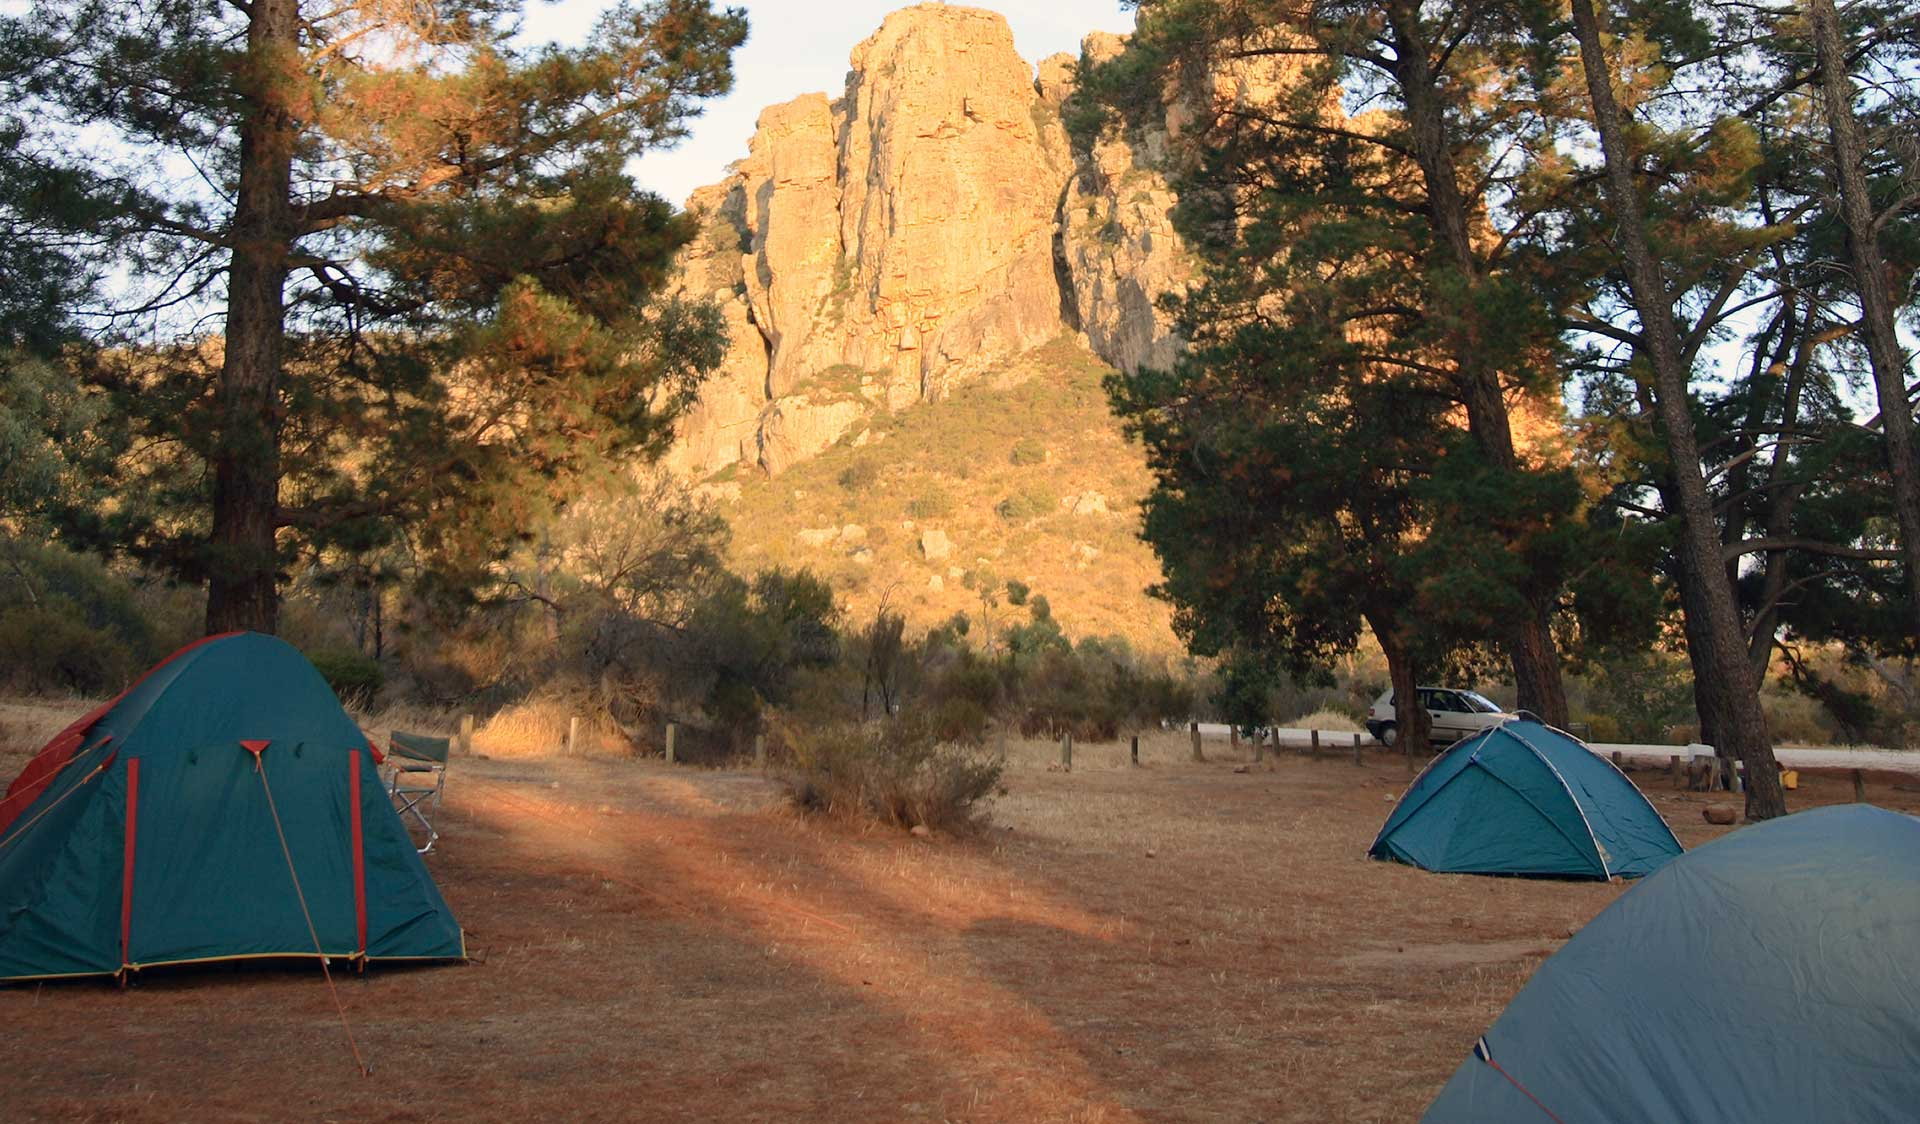 The campsite at Mount Arapiles